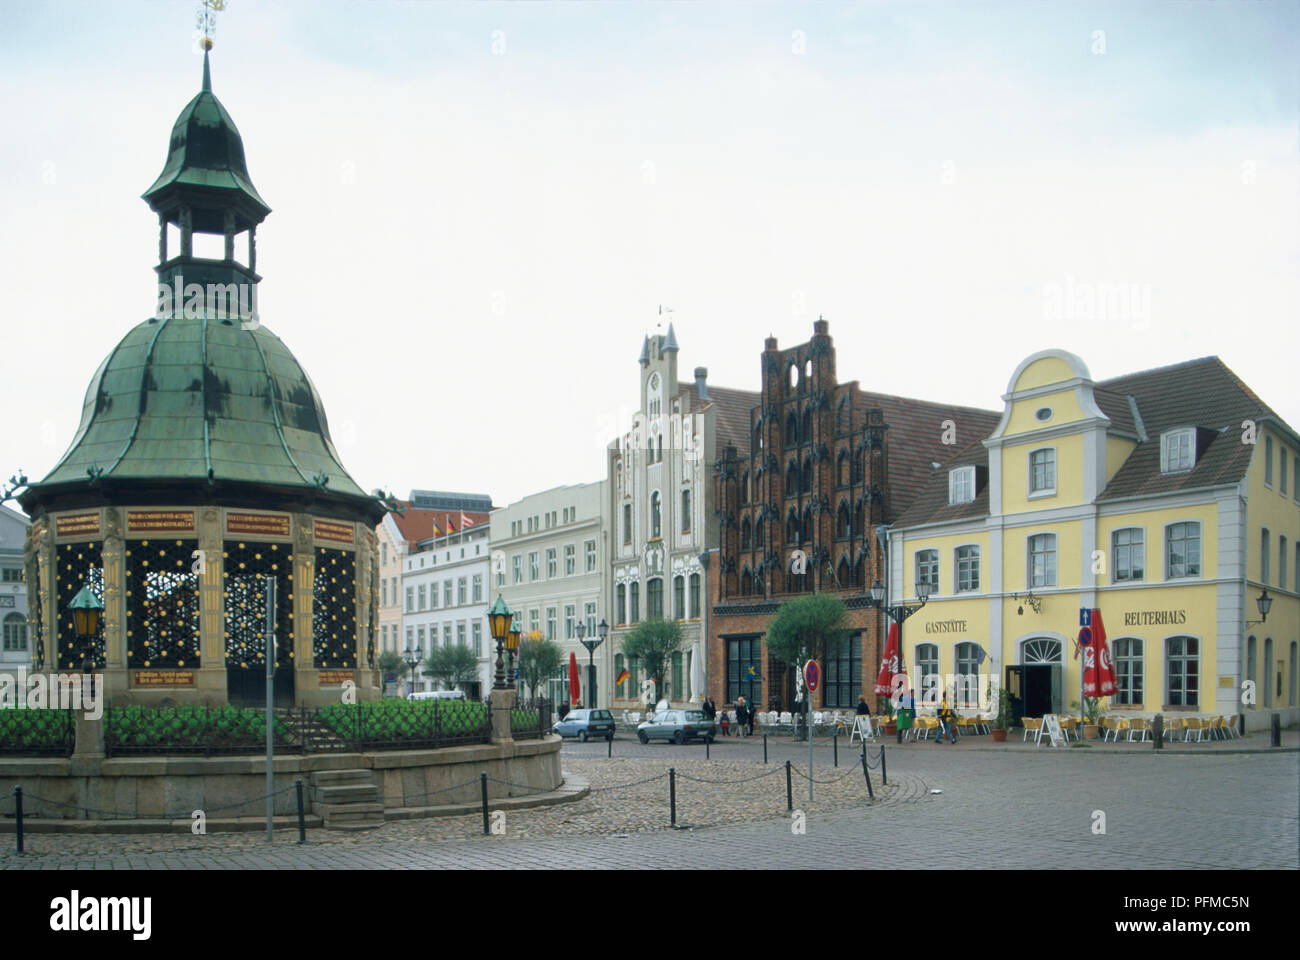 Germany, Wismar, Alter Schwede or old Swede, the most beautiful house on the square, and the Wasserspiele or water feature, a Dutch Renaissance pavilion dating from 1602, in the market square - Stock Image